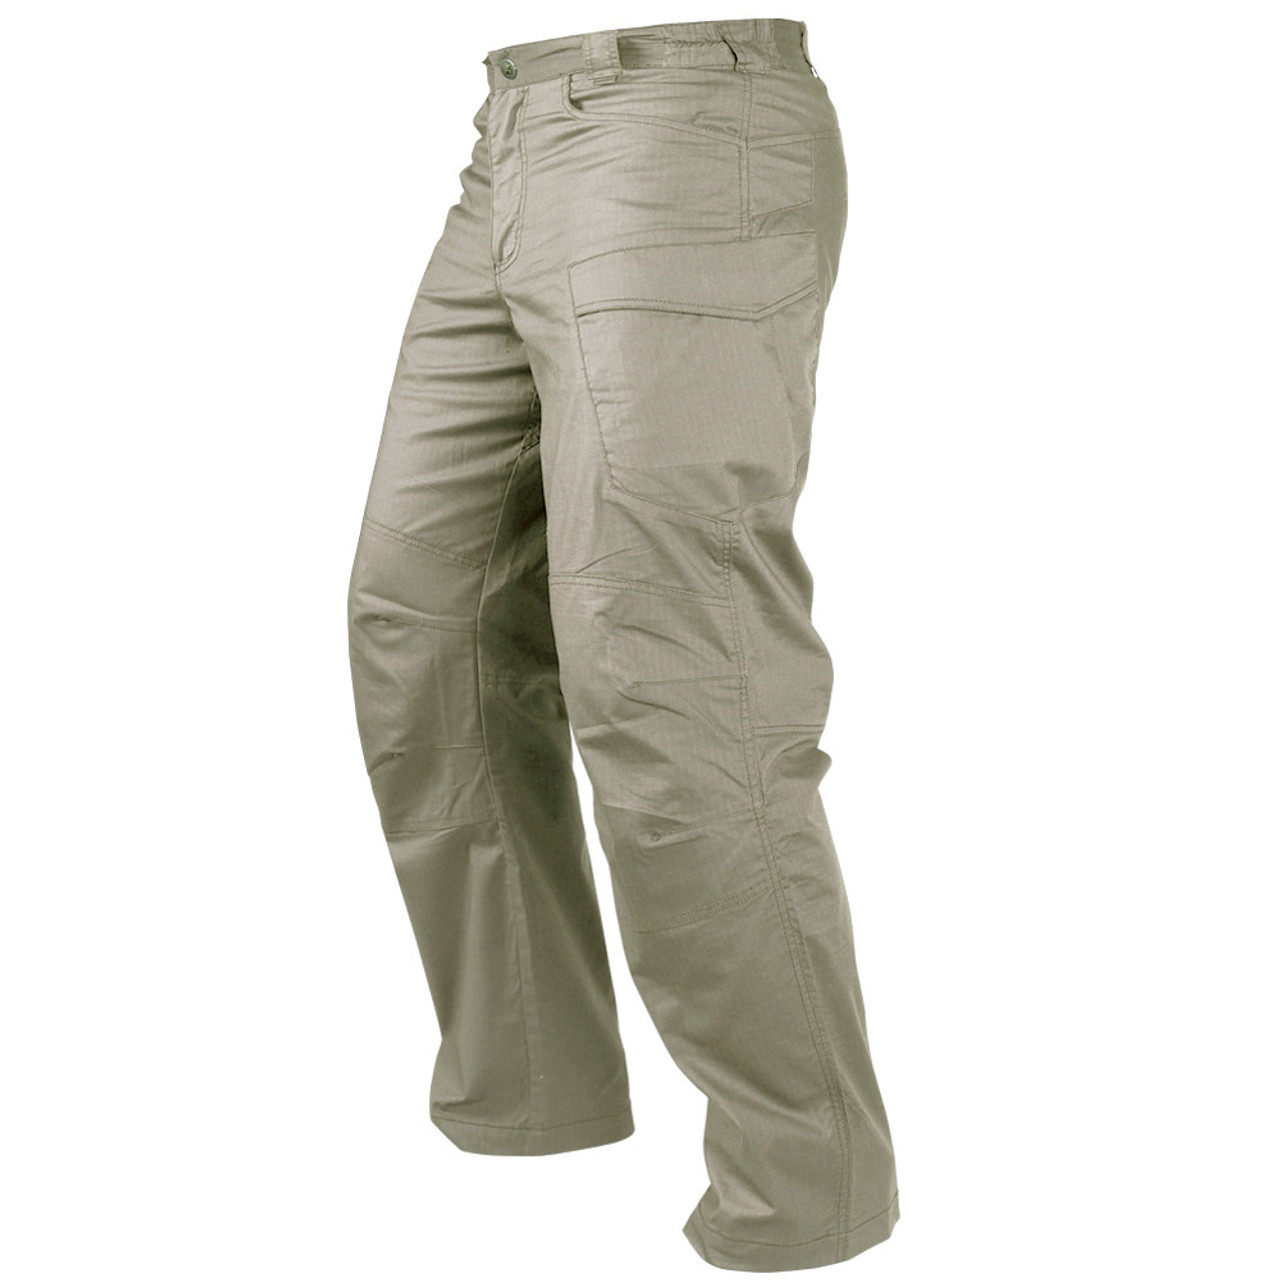 Stealth Operator Pants